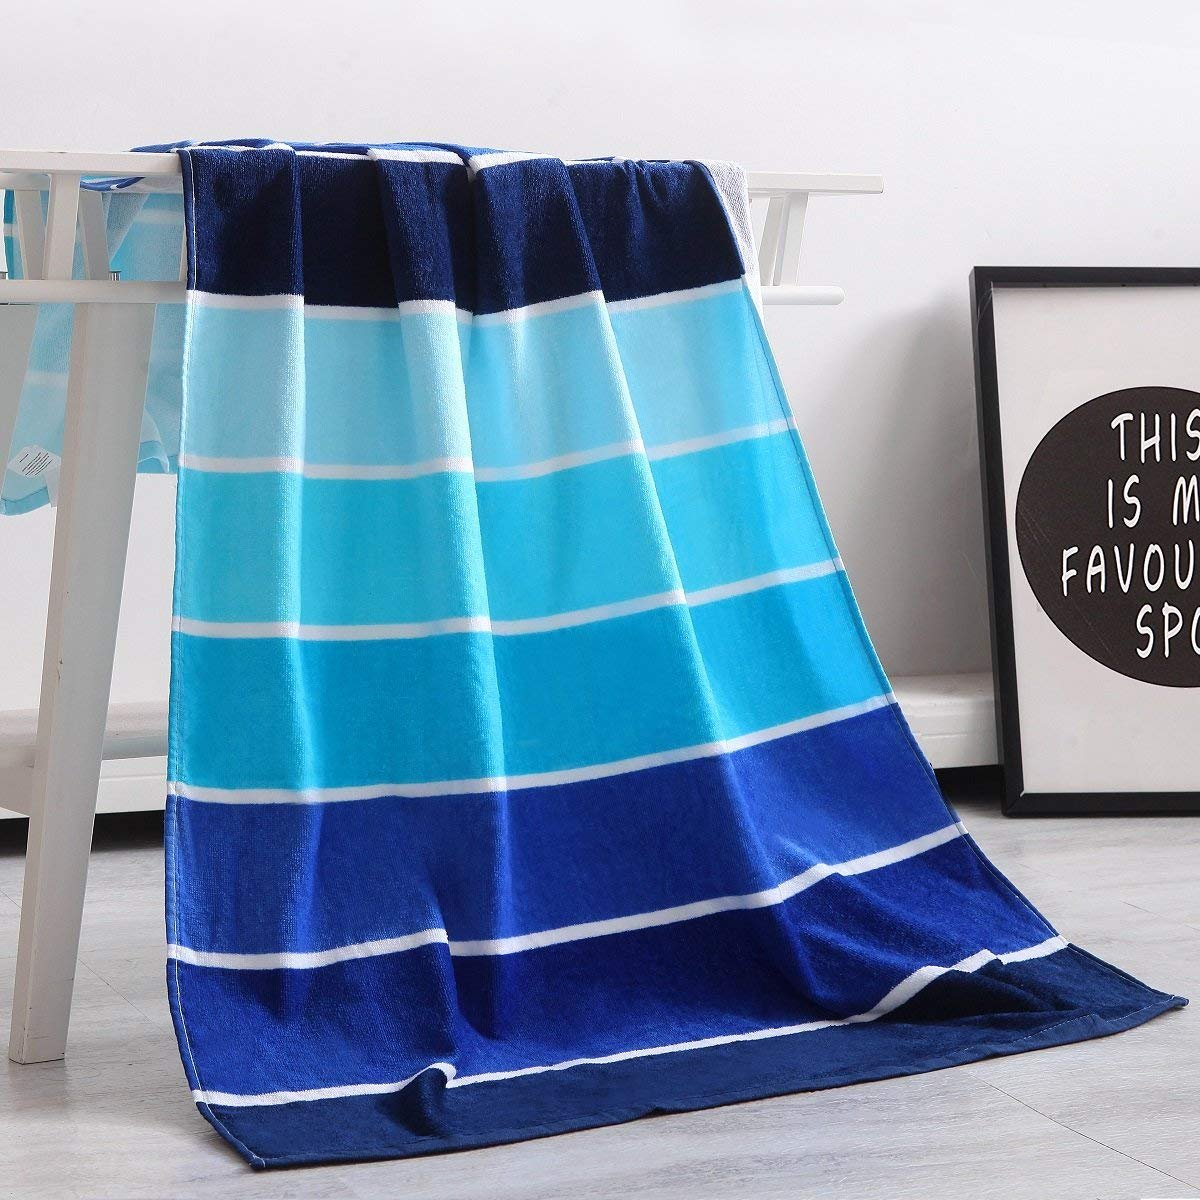 Exclusivo Mezcla 100% Cotton Beach Towel, Pool Towel Gradient Blue Striped (30'' x 60'')-Soft, Quick Dry, Lightweight, Absorbent, and Plush